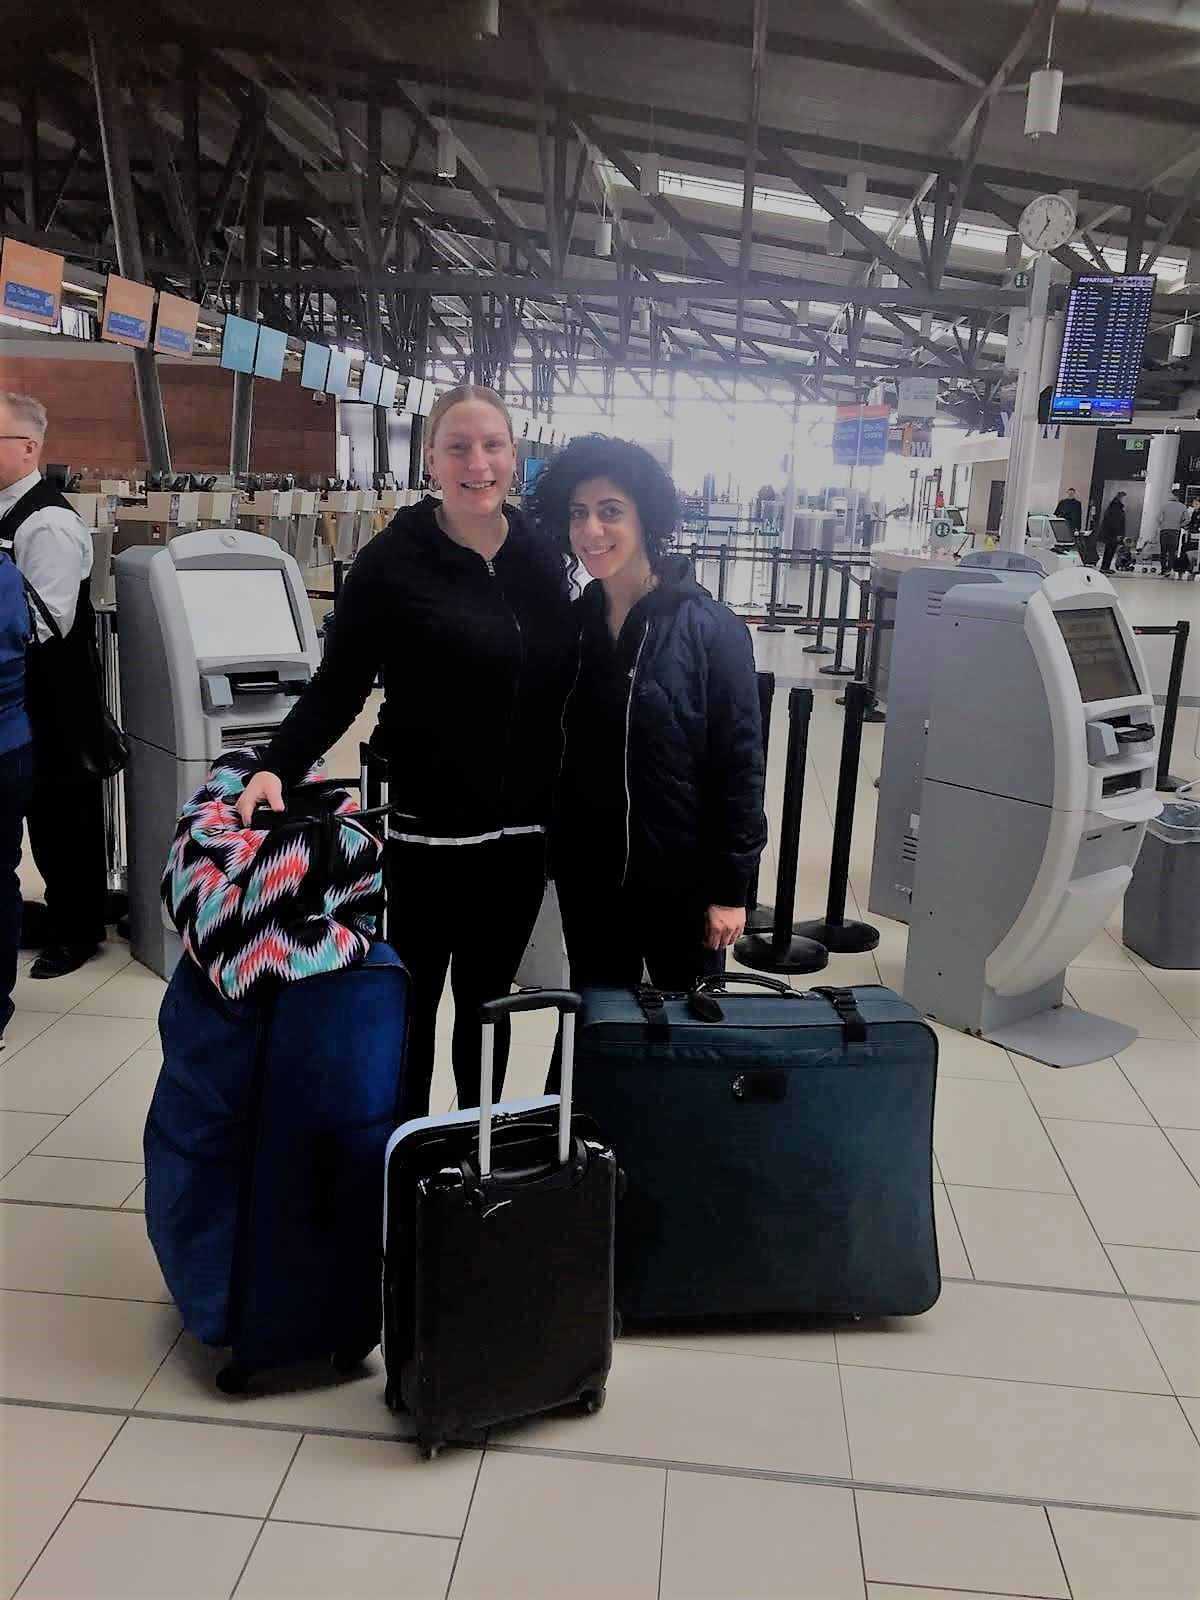 Volunteers Leanne and Nadine take the bag of shoes on their flight to Kenya